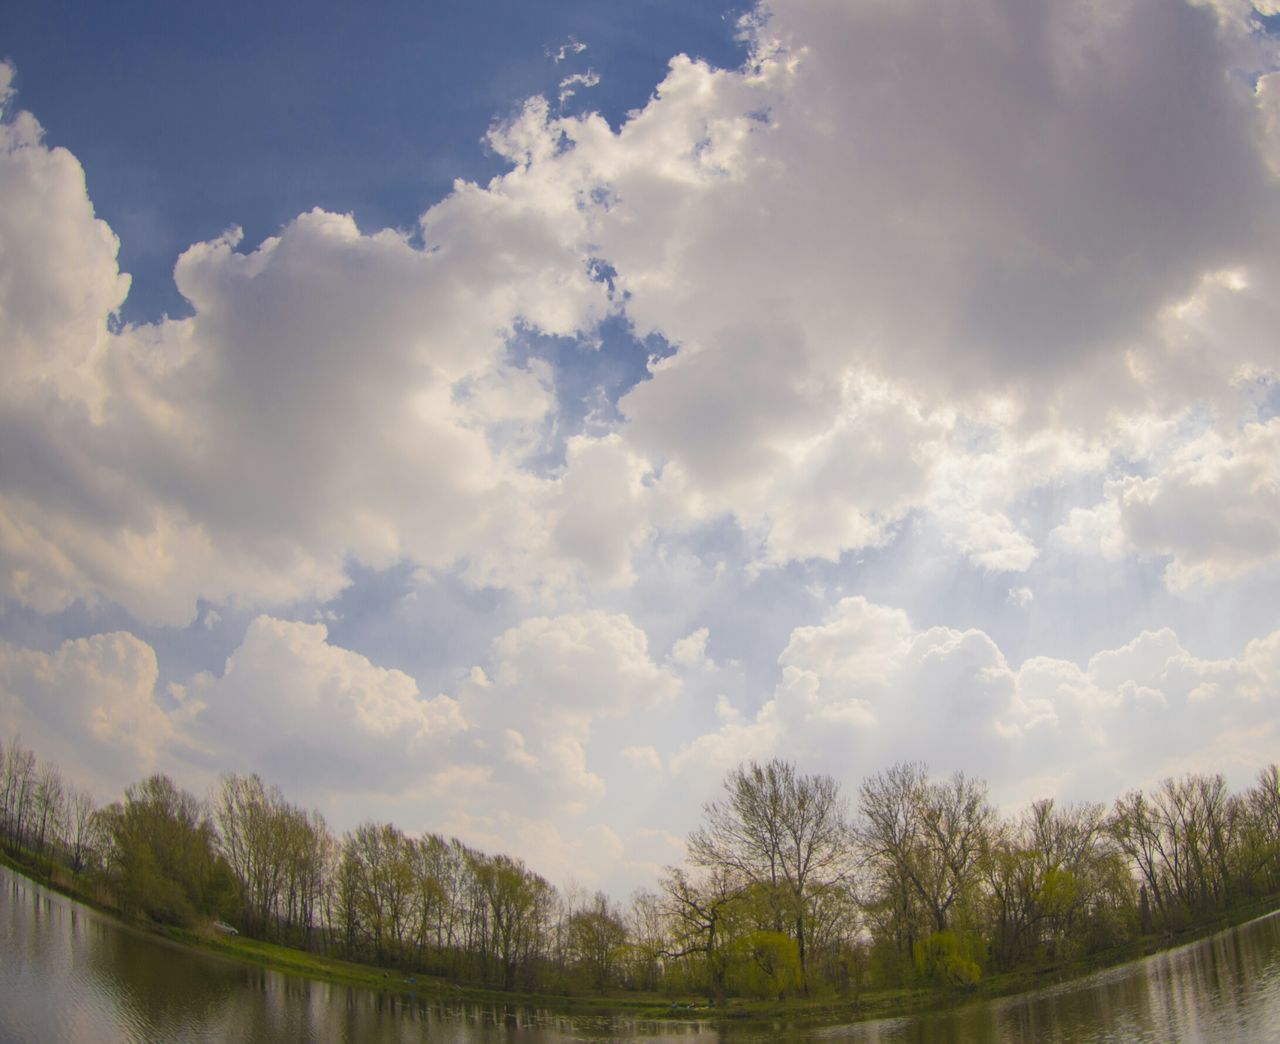 no people, nature, cloud - sky, sky, day, tranquility, outdoors, tree, scenics, beauty in nature, tranquil scene, landscape, water